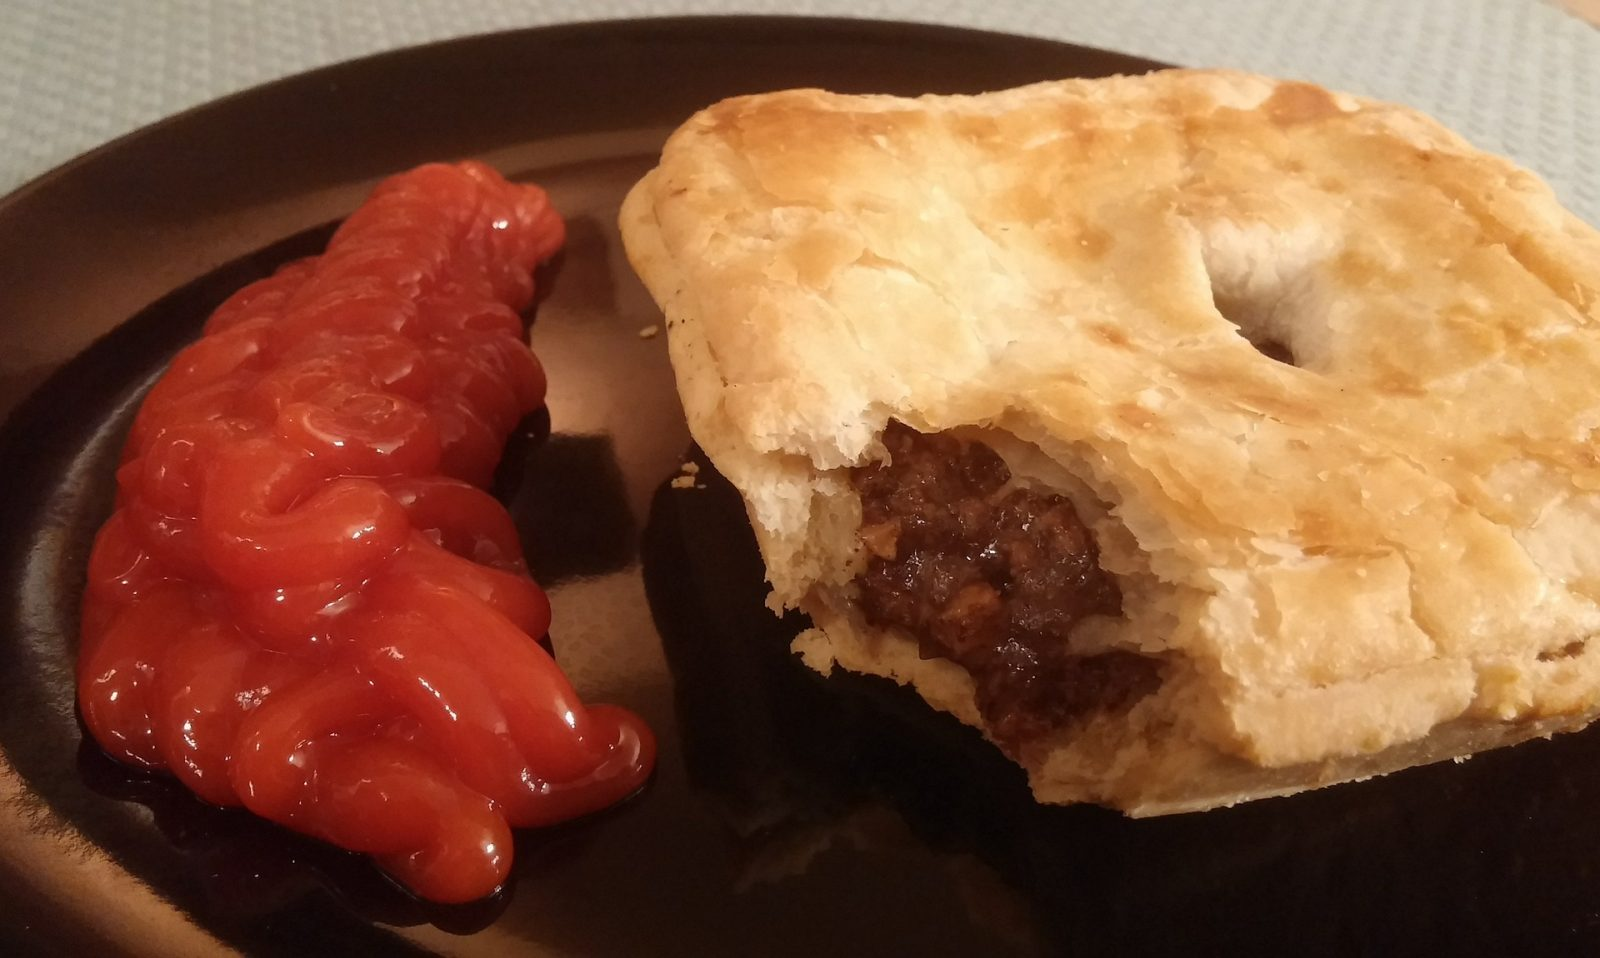 Food to try in Australia: A classic Australian mince meat pie with tomato sauce